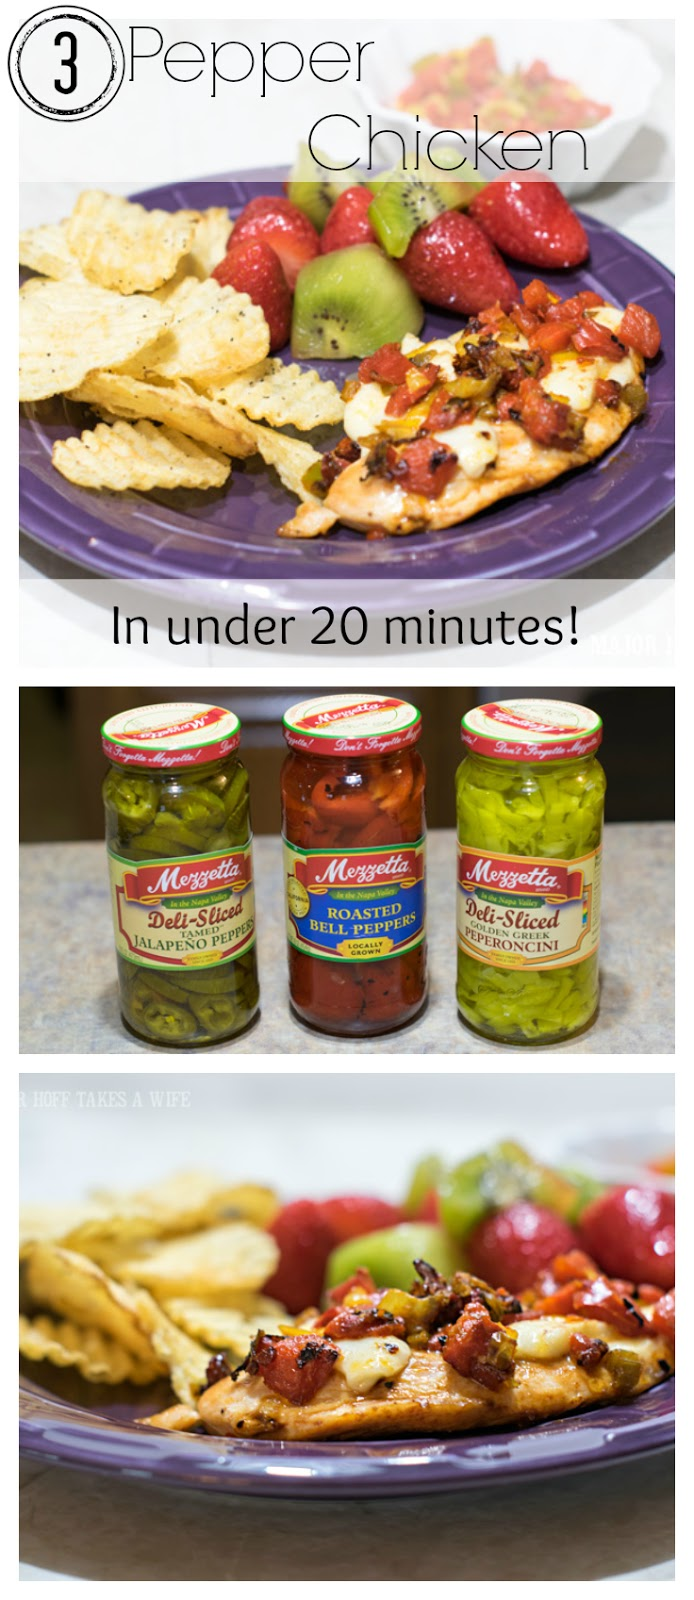 Holiday Memories with Mezzetta! These easy lunch or dinner will have you sailing through the holidays. Casual enough for everyday, but colorful enough for a holiday feast! Features 3 different peppers and packs a flavorful punch! All in less than 20 minutes! There is also a coupon for Mezzetta products as well as a chance to win 1 of 31 Holiday Gift Baskets! #MezzettaMemories #SharingJoy